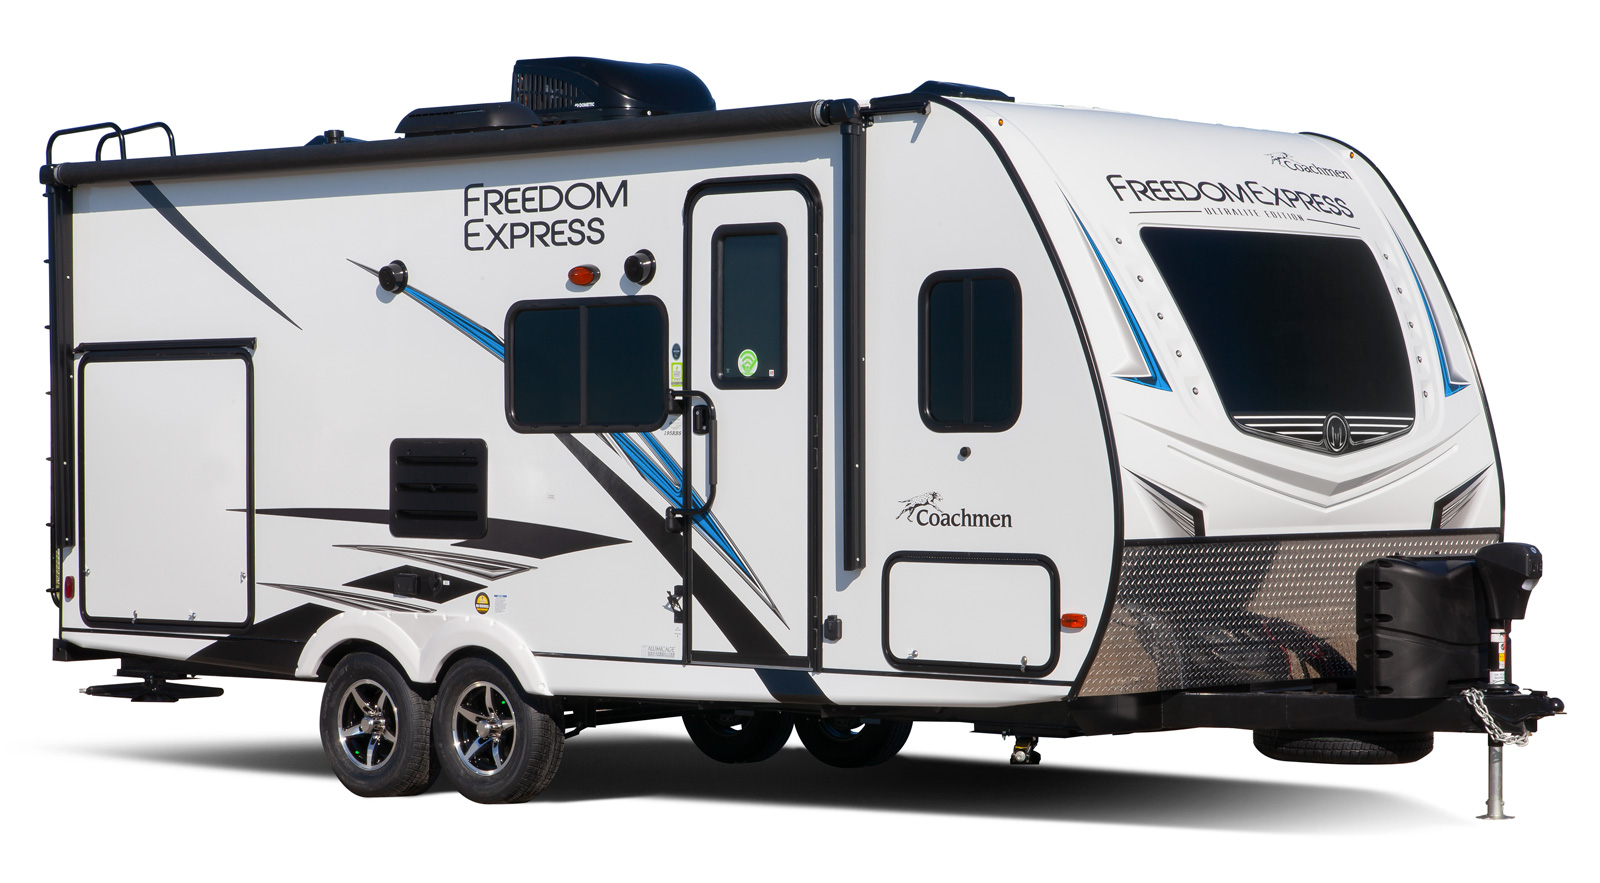 Freedom Express Ultra Lite by Coachmen RV